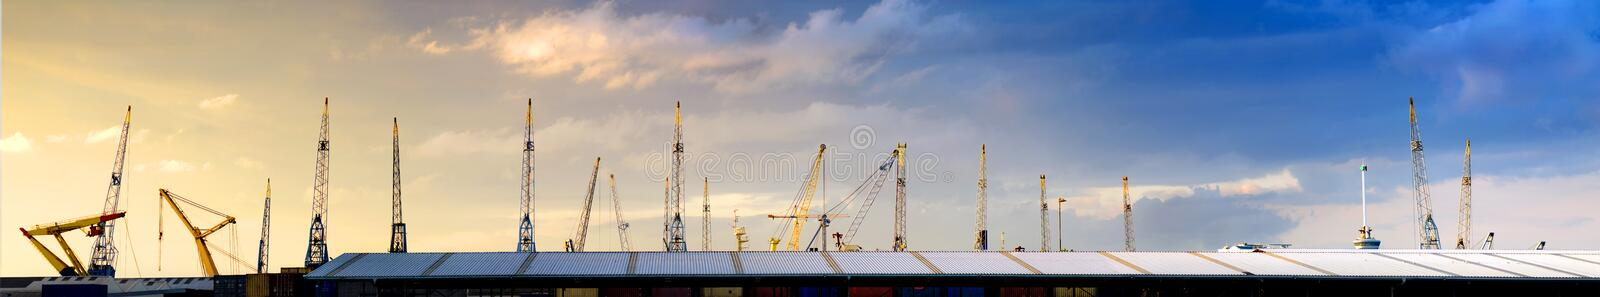 Cranes skyline stock photography